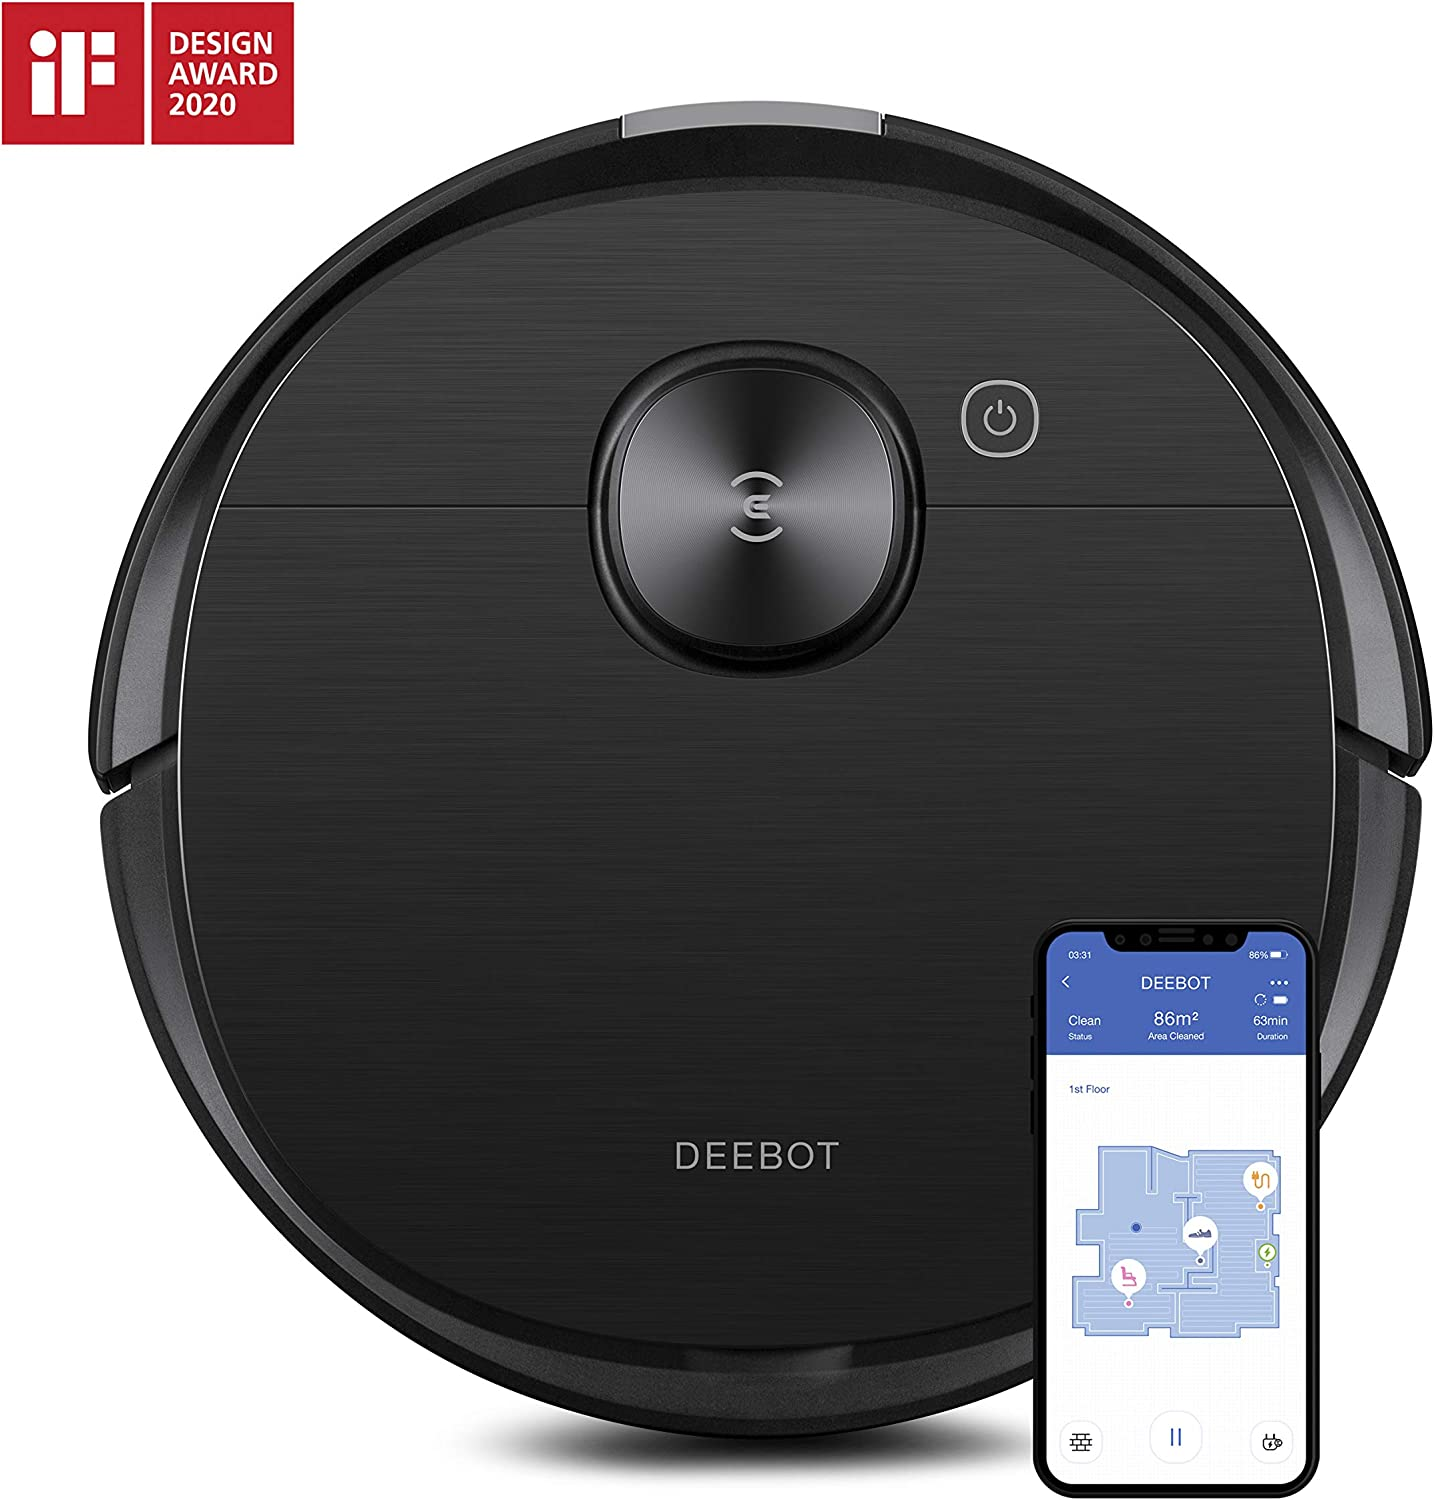 Ecovacs Deebot Ozmo T8 AIVI Robot Vacuum Cleaner & Mop with Smart Objection Recognition, Advanced Laser Mapping, Custom Clean Programming Options, High Efficiency Filter, 3+ Hours of Runtime